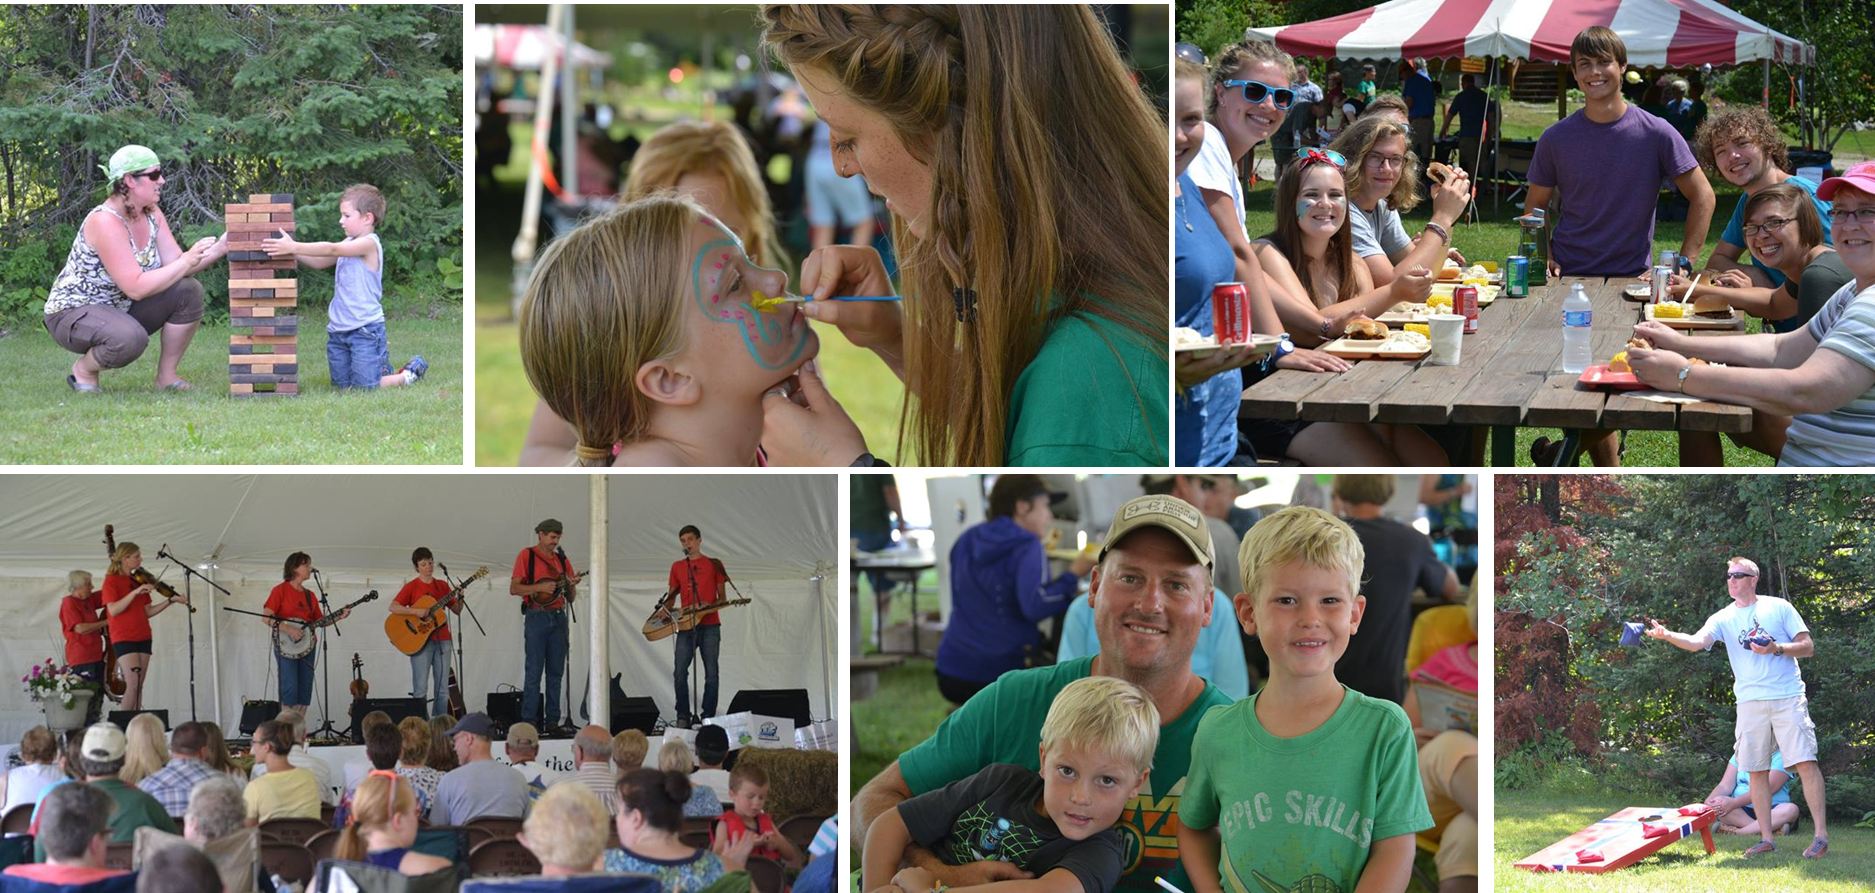 Click the collage to view more photos from this great event!